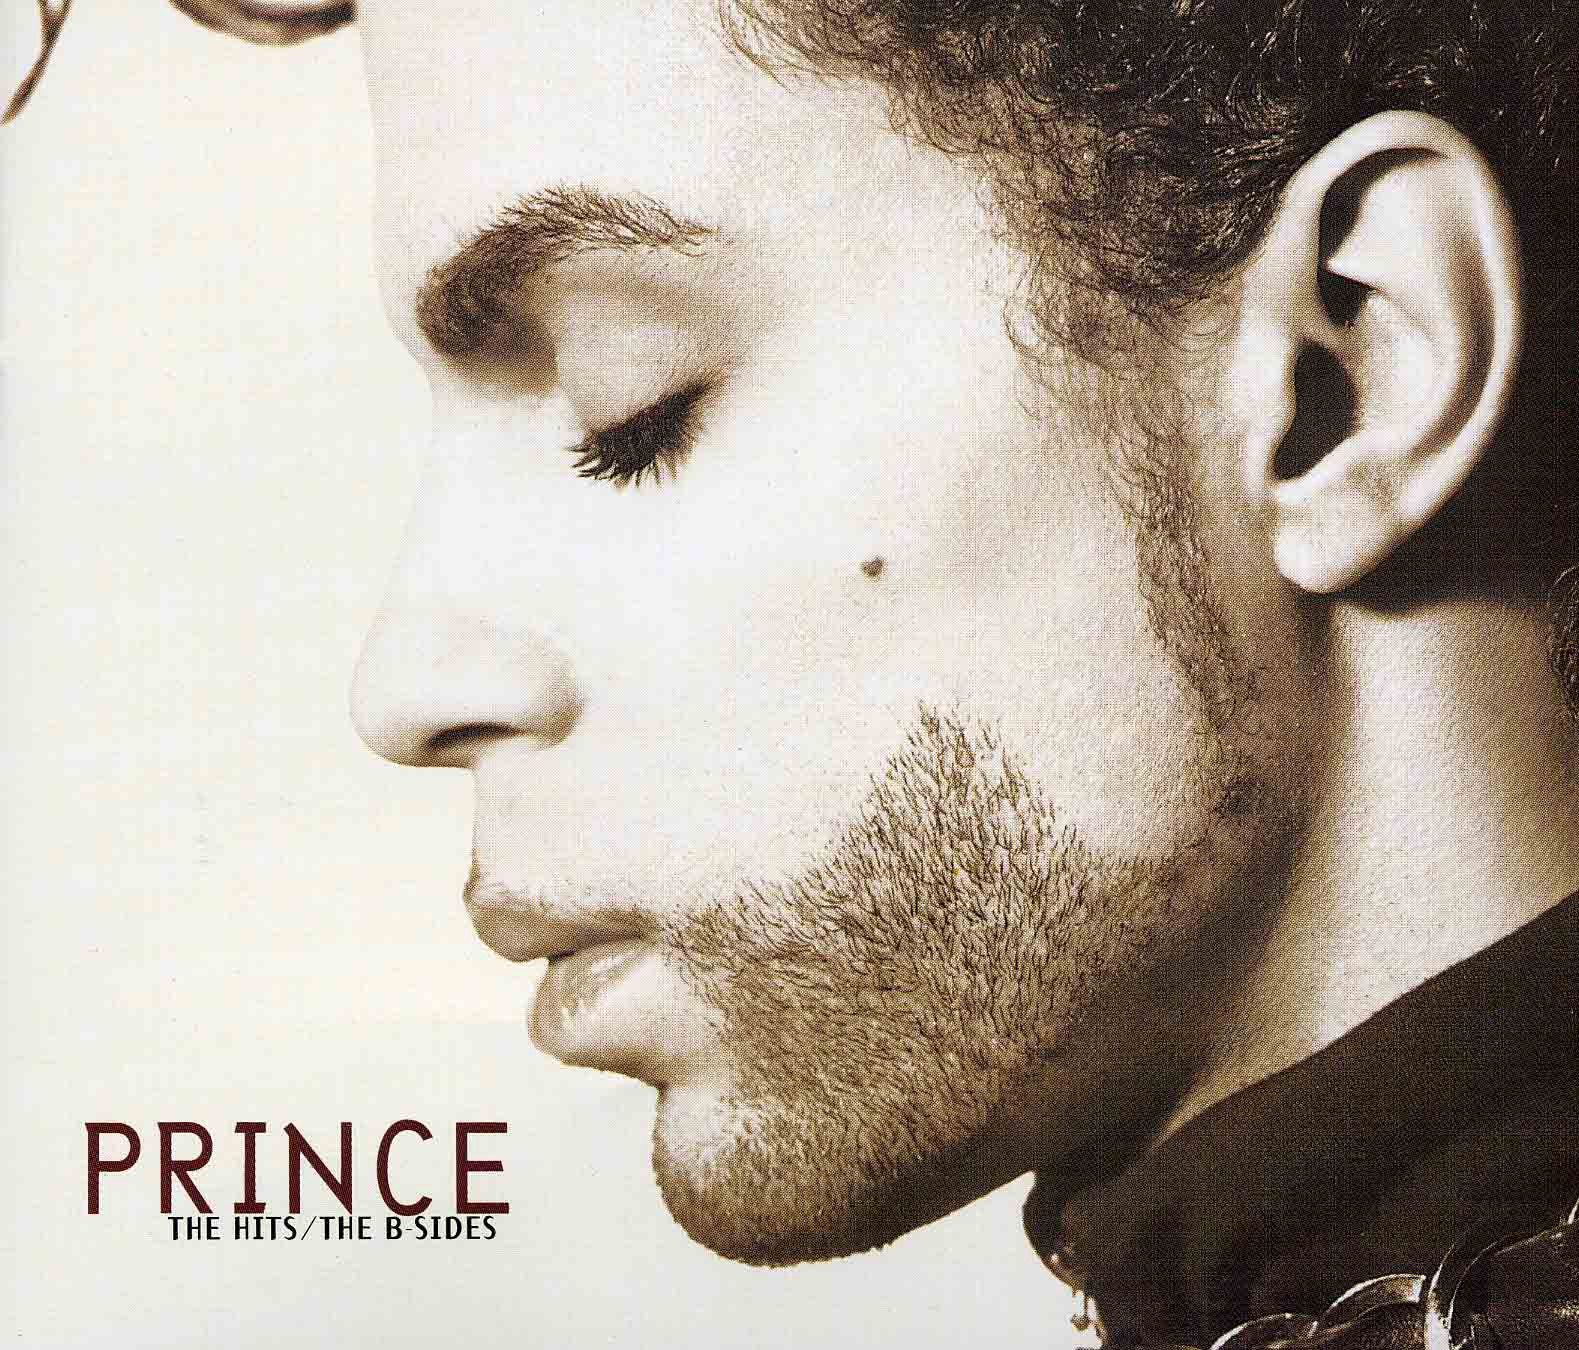 prince's own liner notes on his greatest hits – anil dash – medium